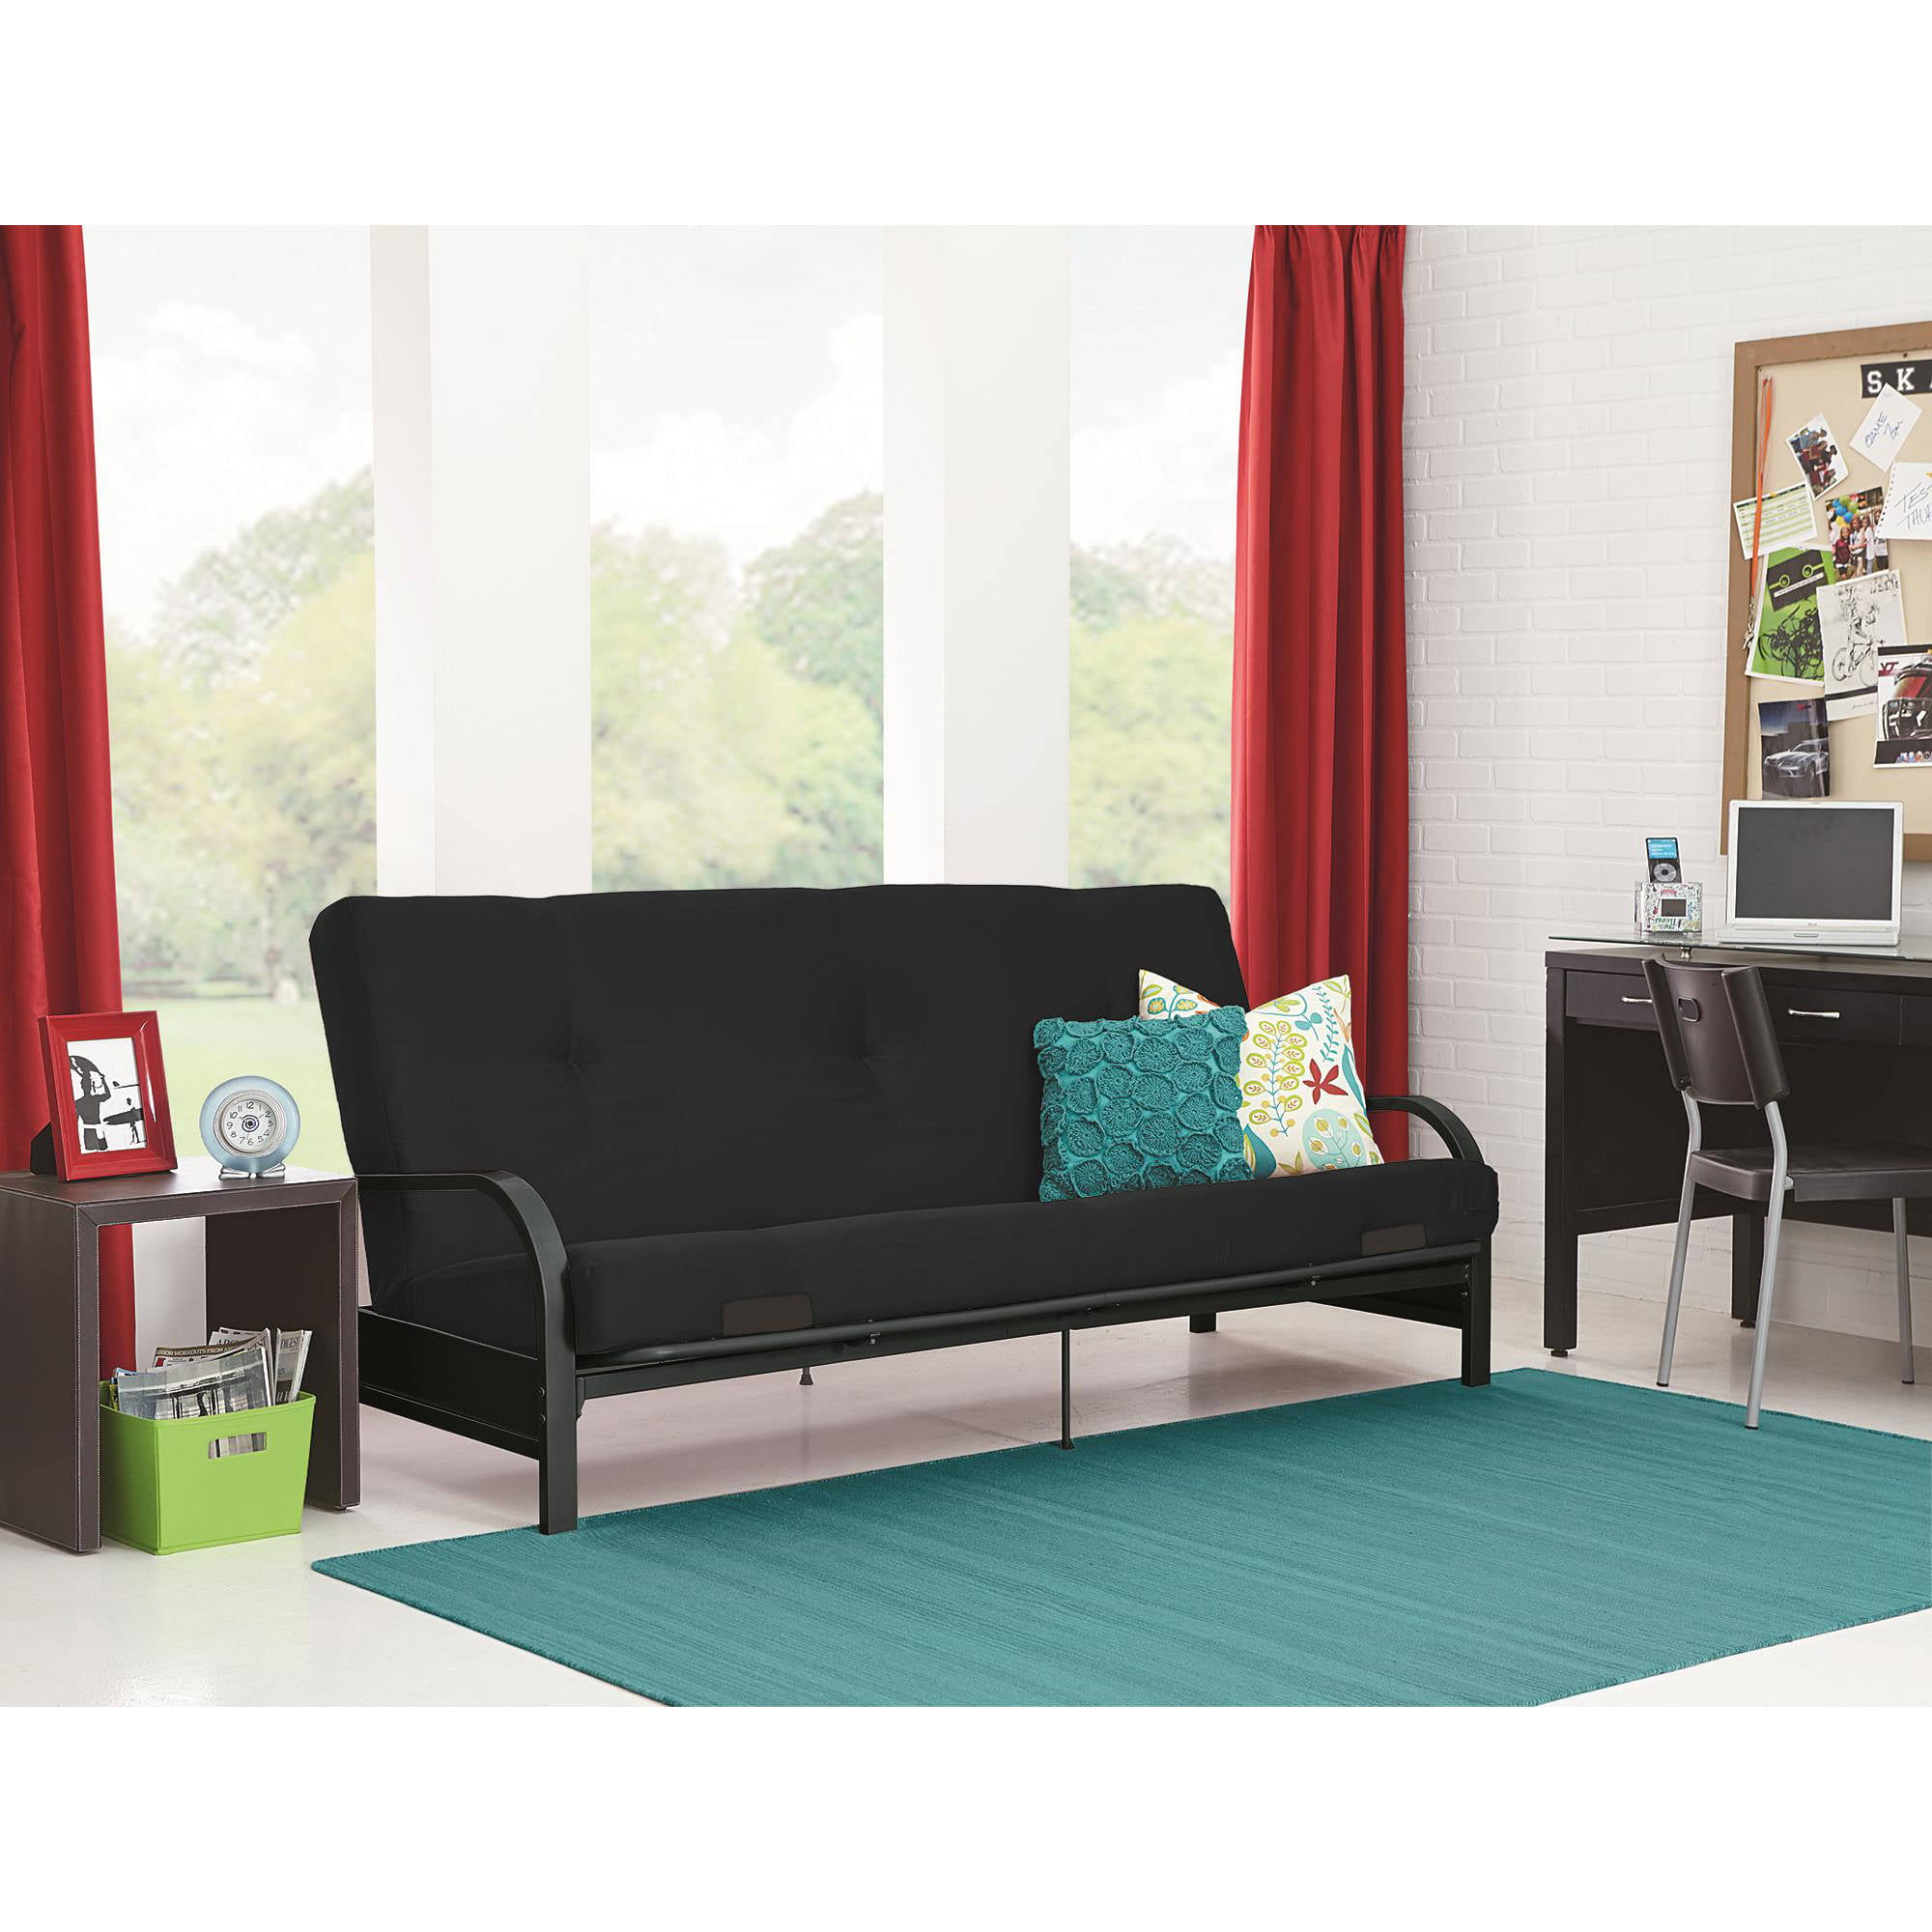 futons kiko in futon classic off discount buy sofa used elm west grey charcoal sofas